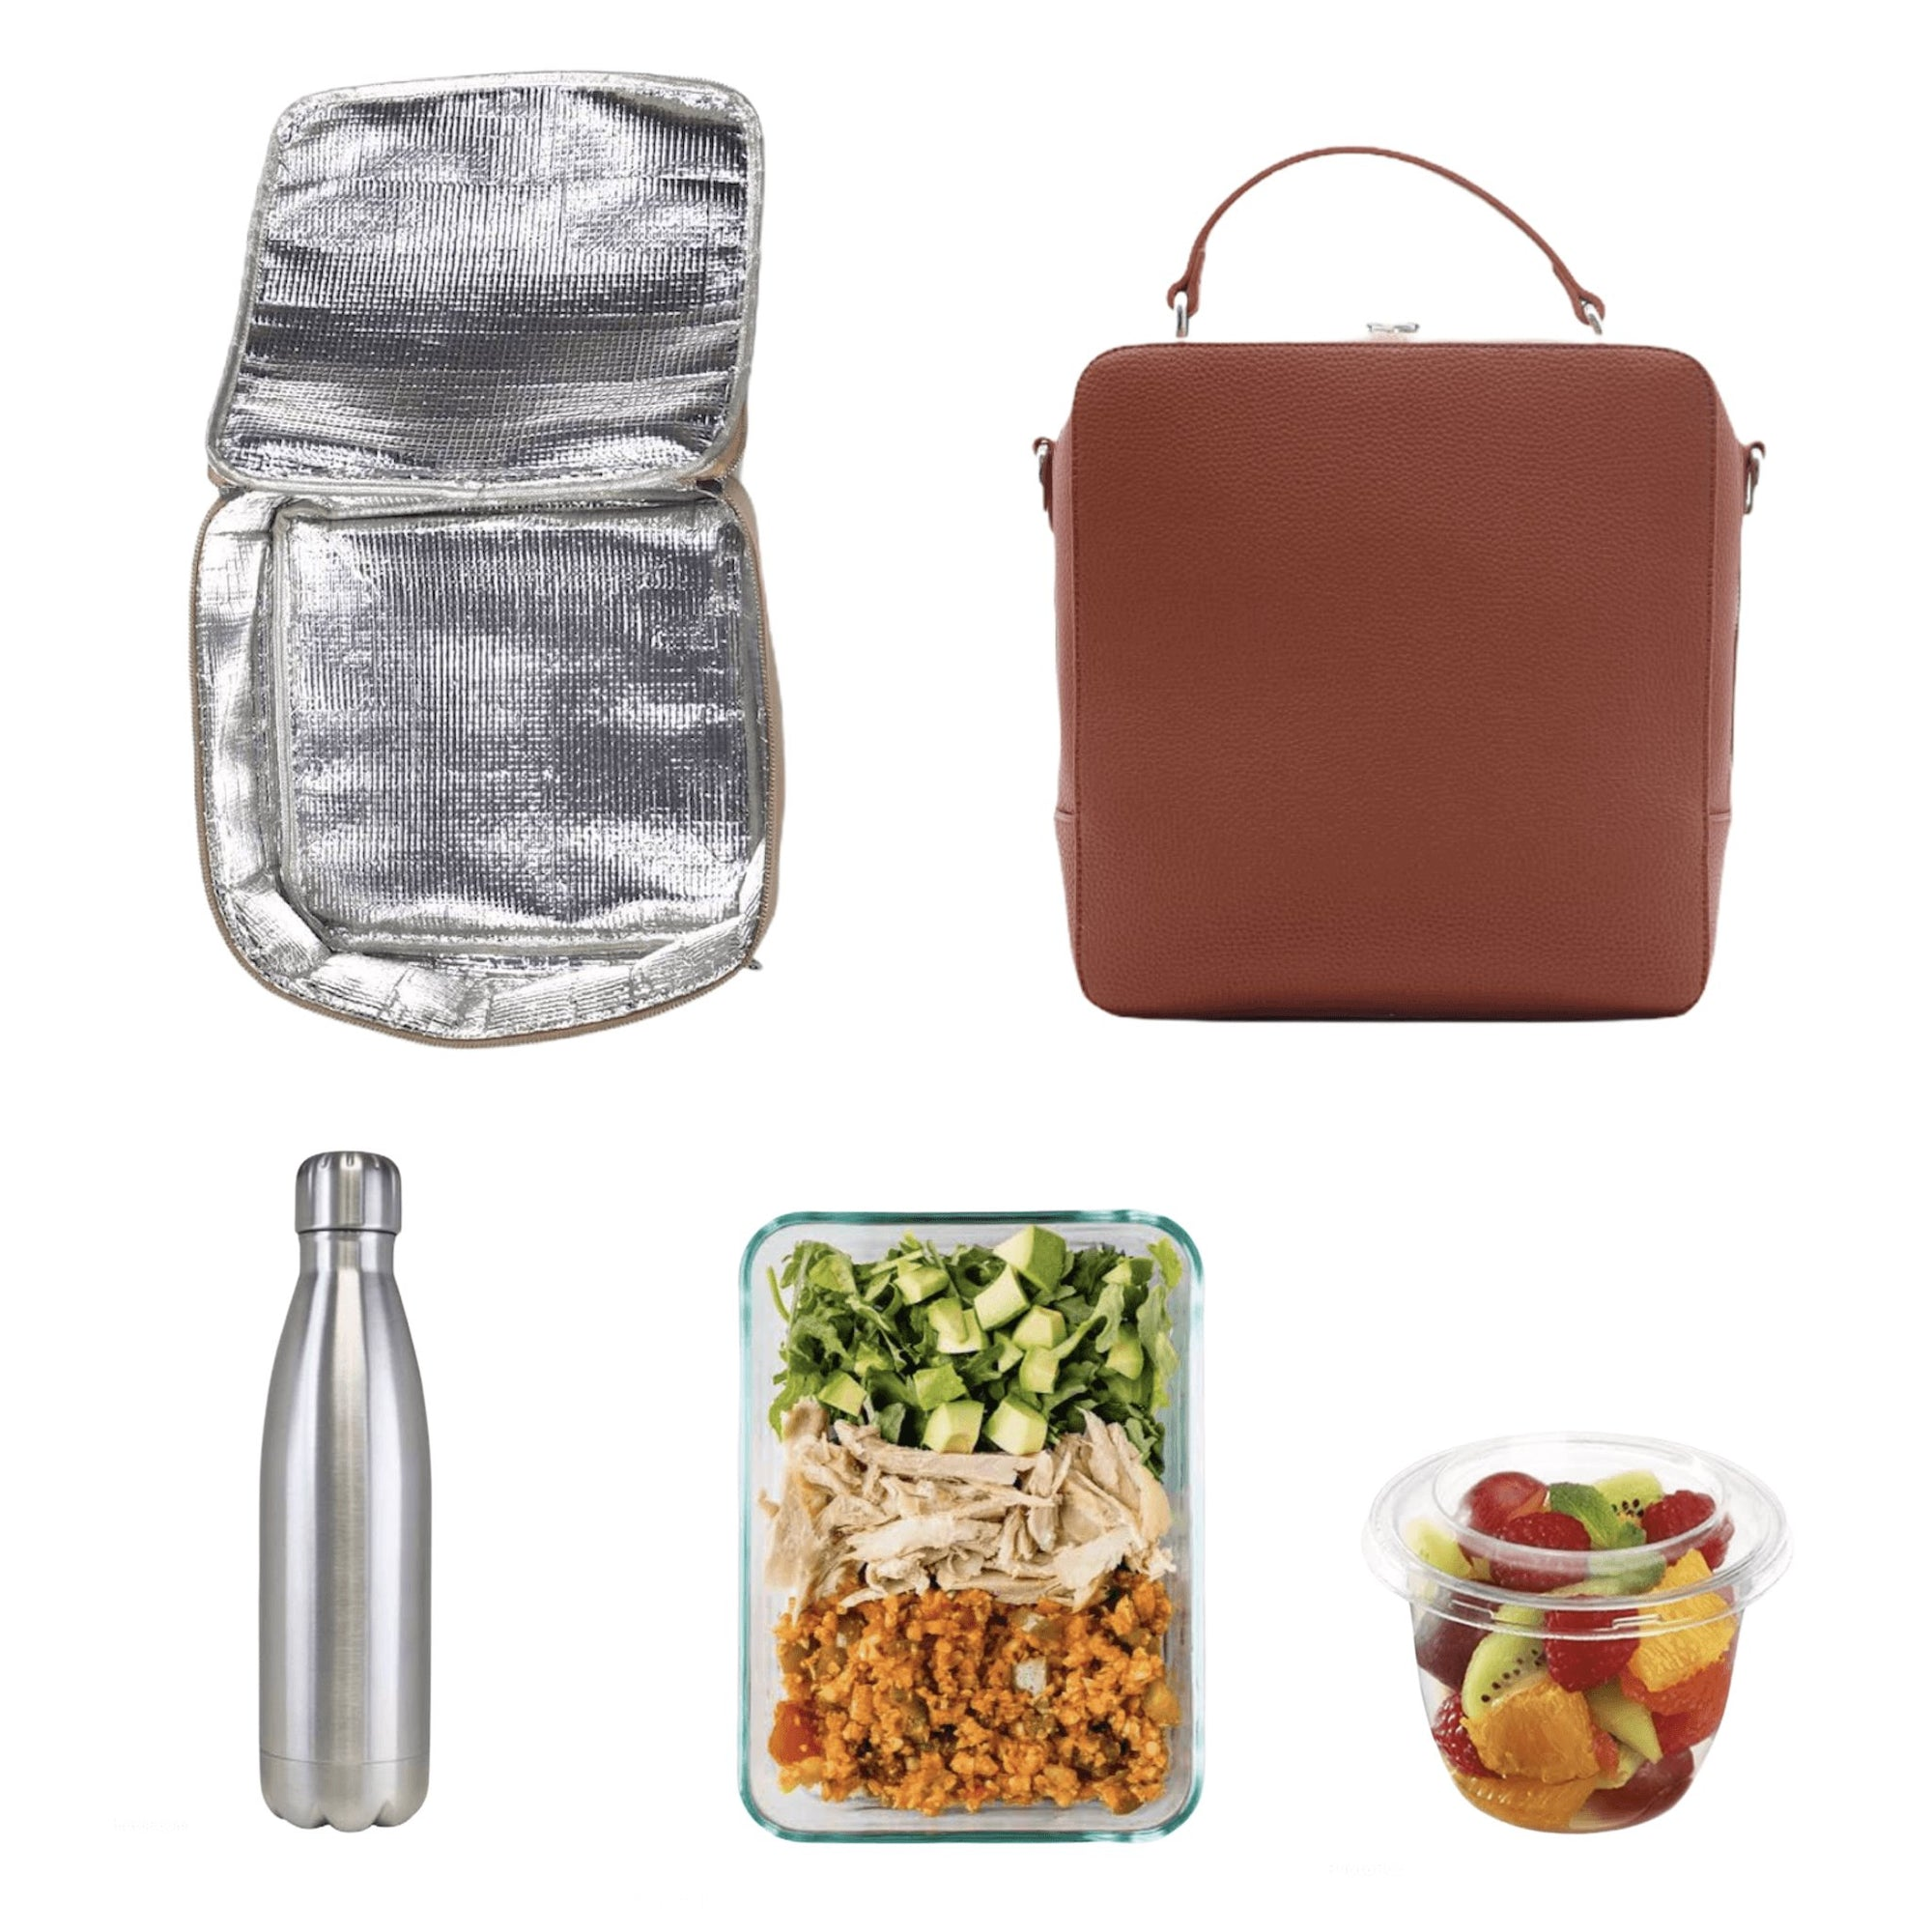 Vida Adult Lunch Bag Praktikals